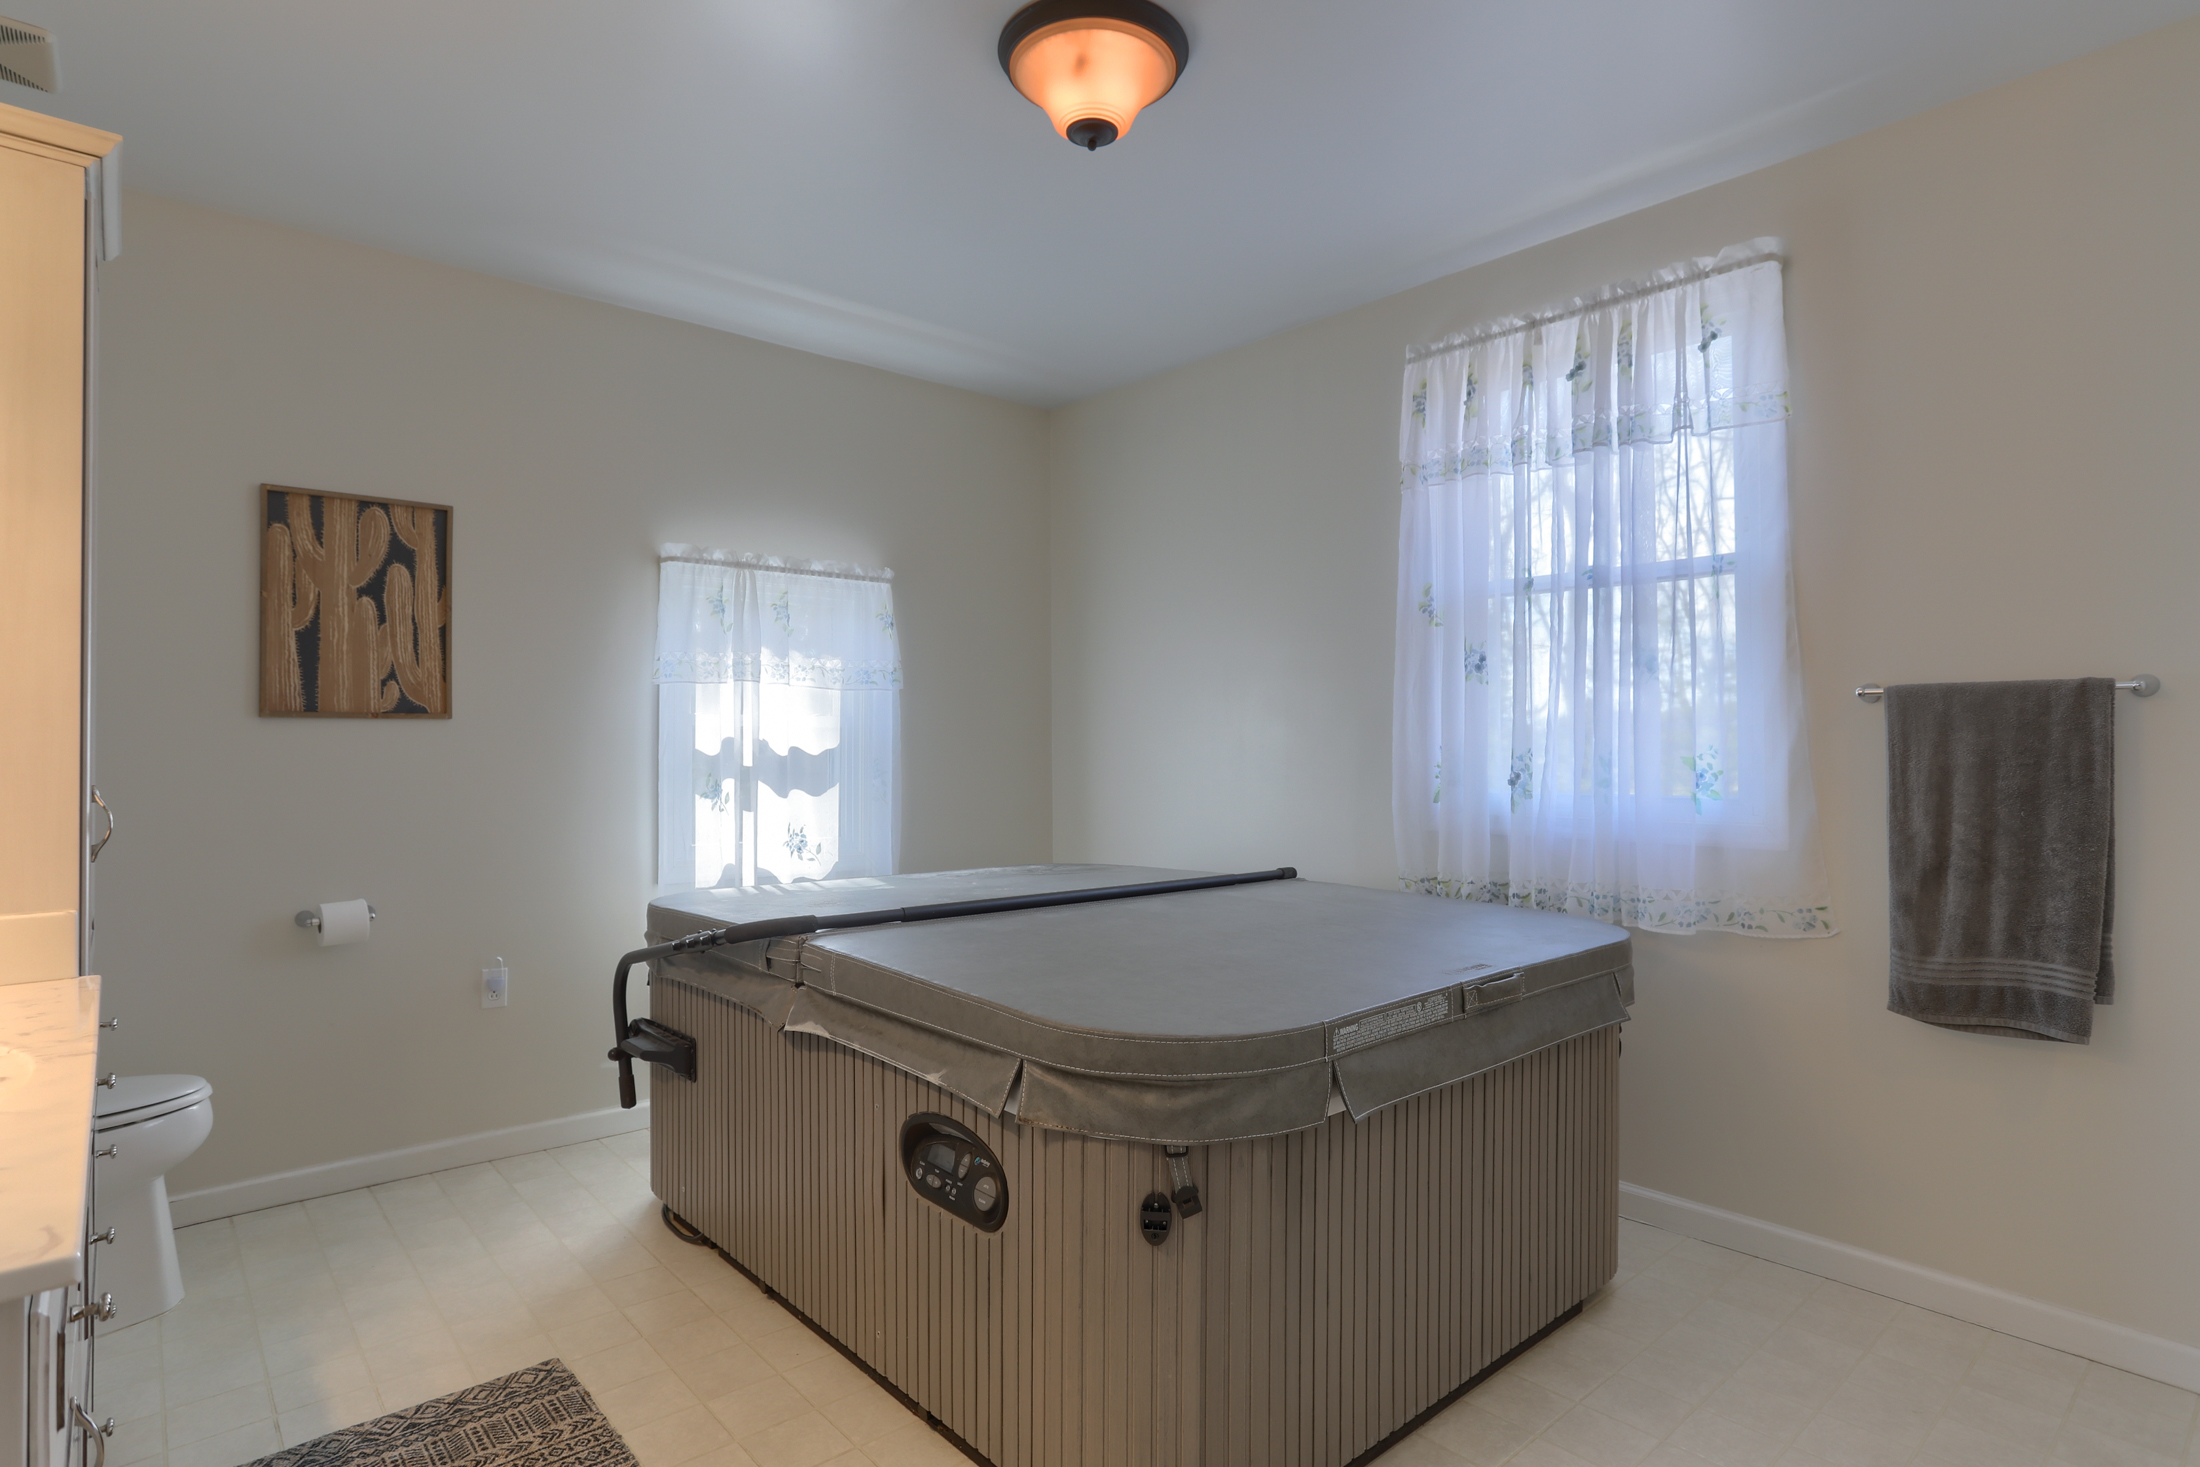 285 Strack Drive - The hot tub stays